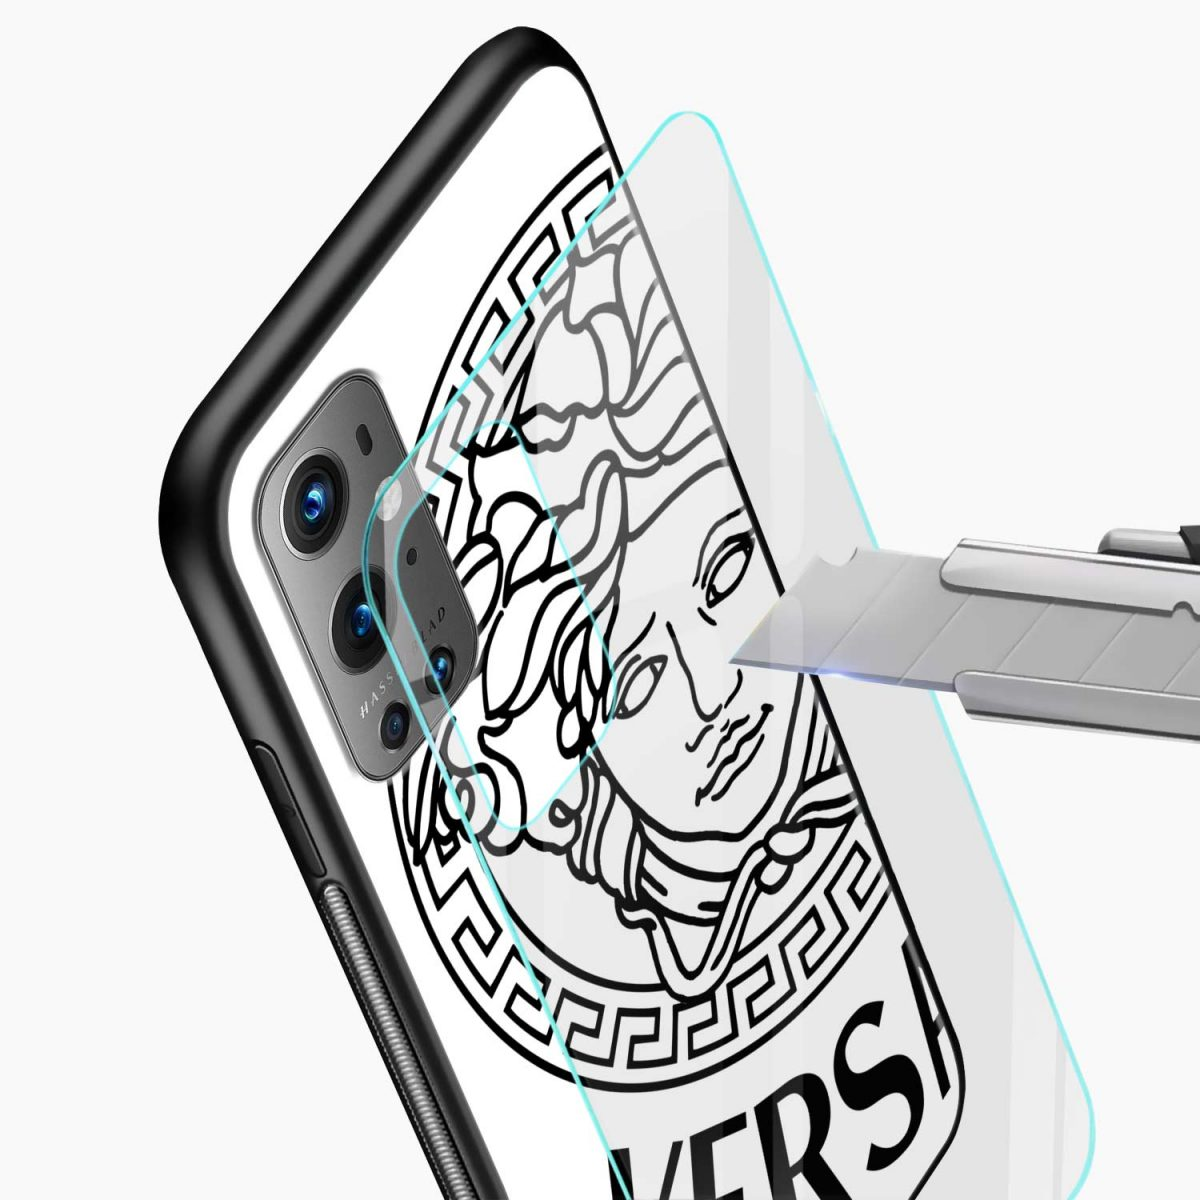 versace black white glass view oneplus 9 pro back cover